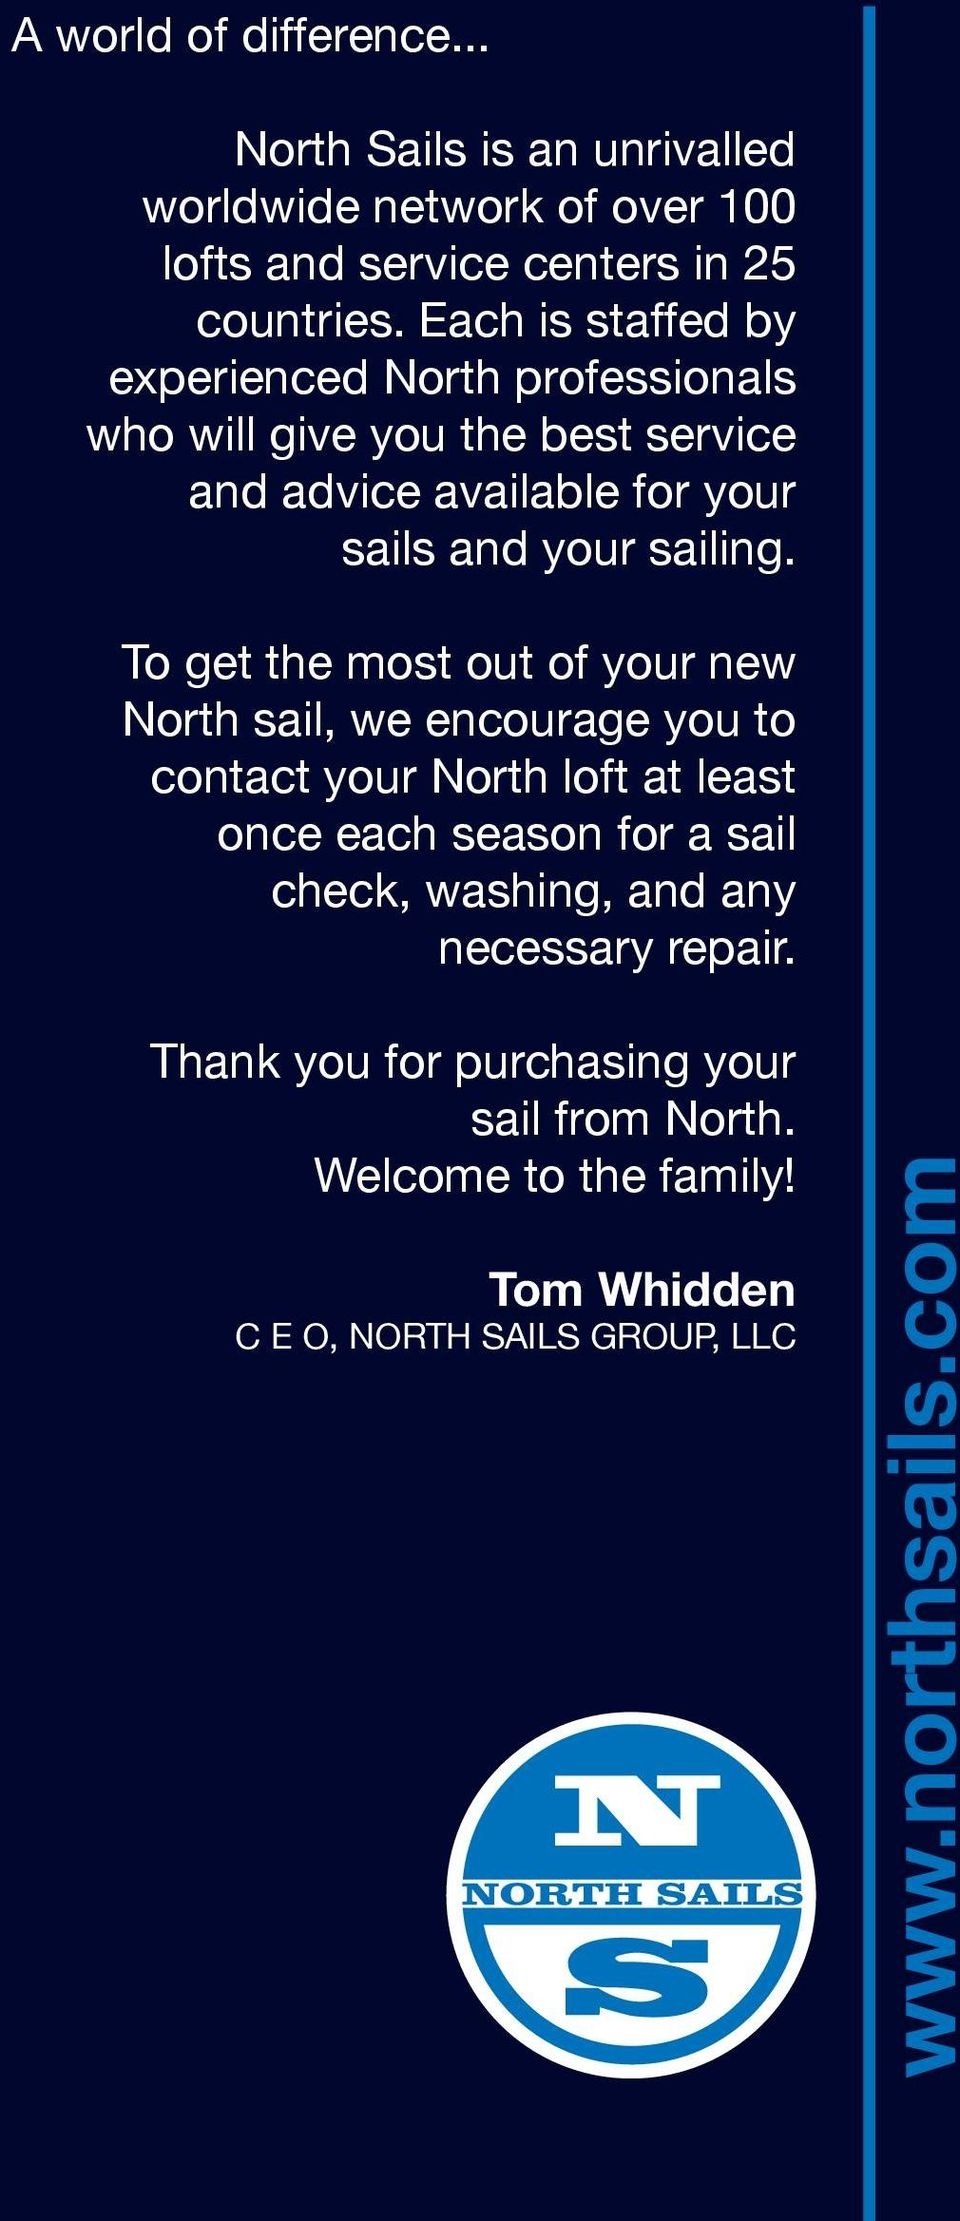 To get the most out of your new North sail, we encourage you to contact your North loft at least once each season for a sail check, washing,